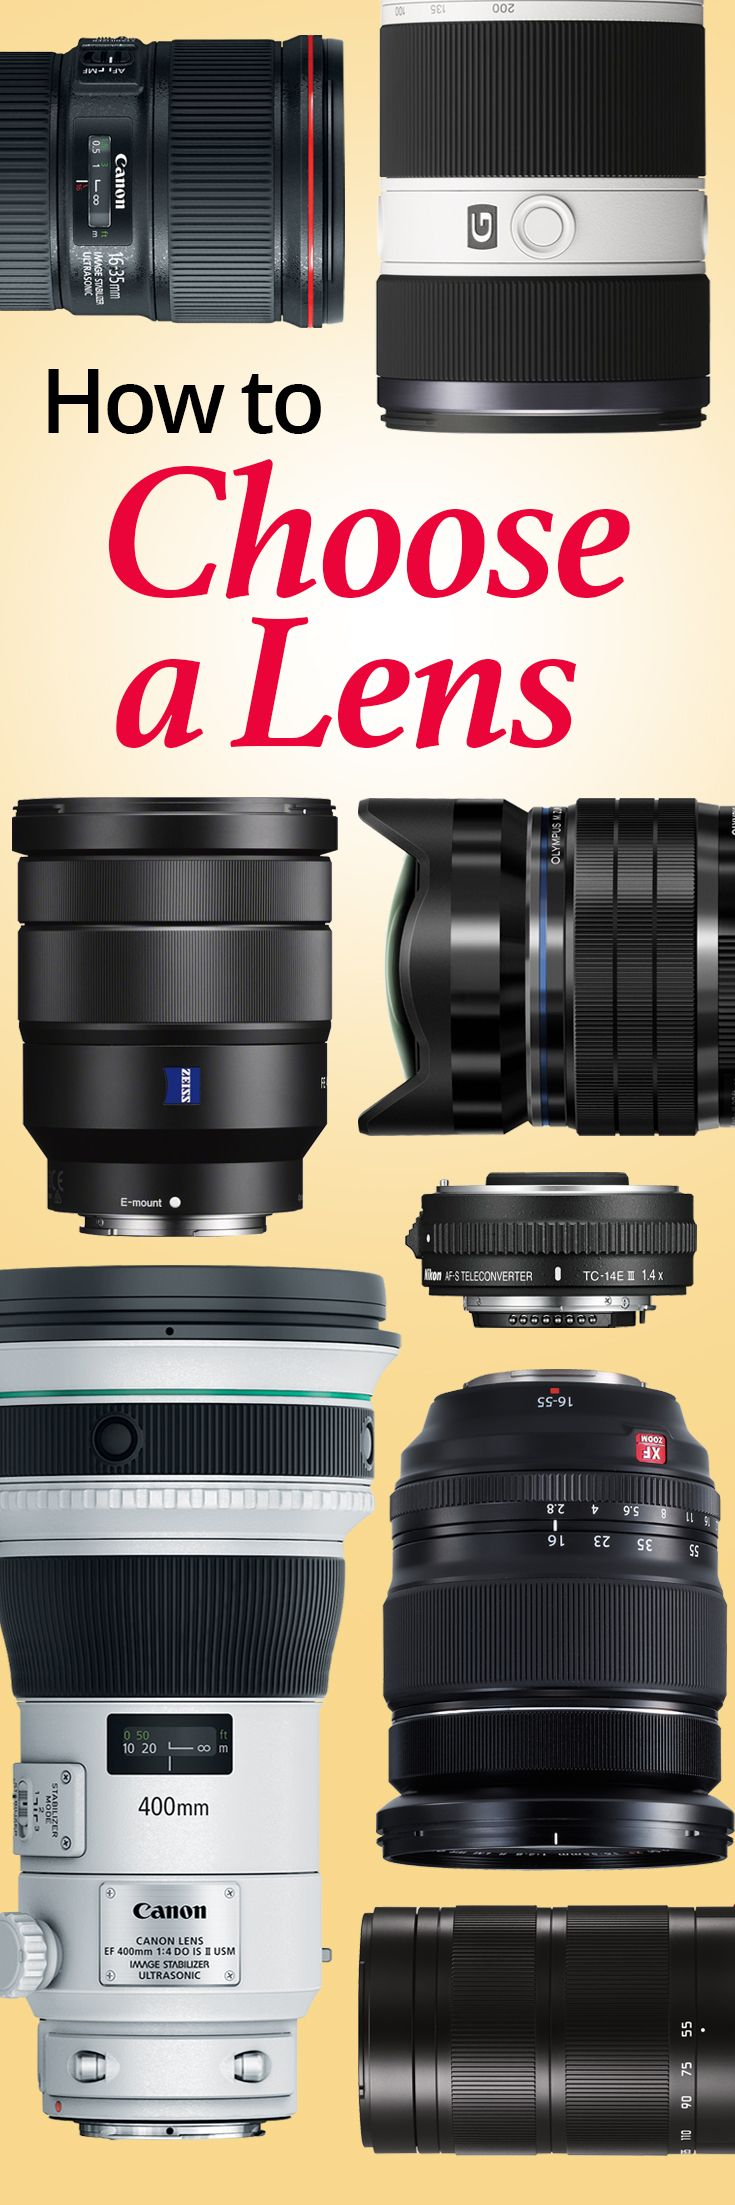 Choosing and using a lens for an SLR